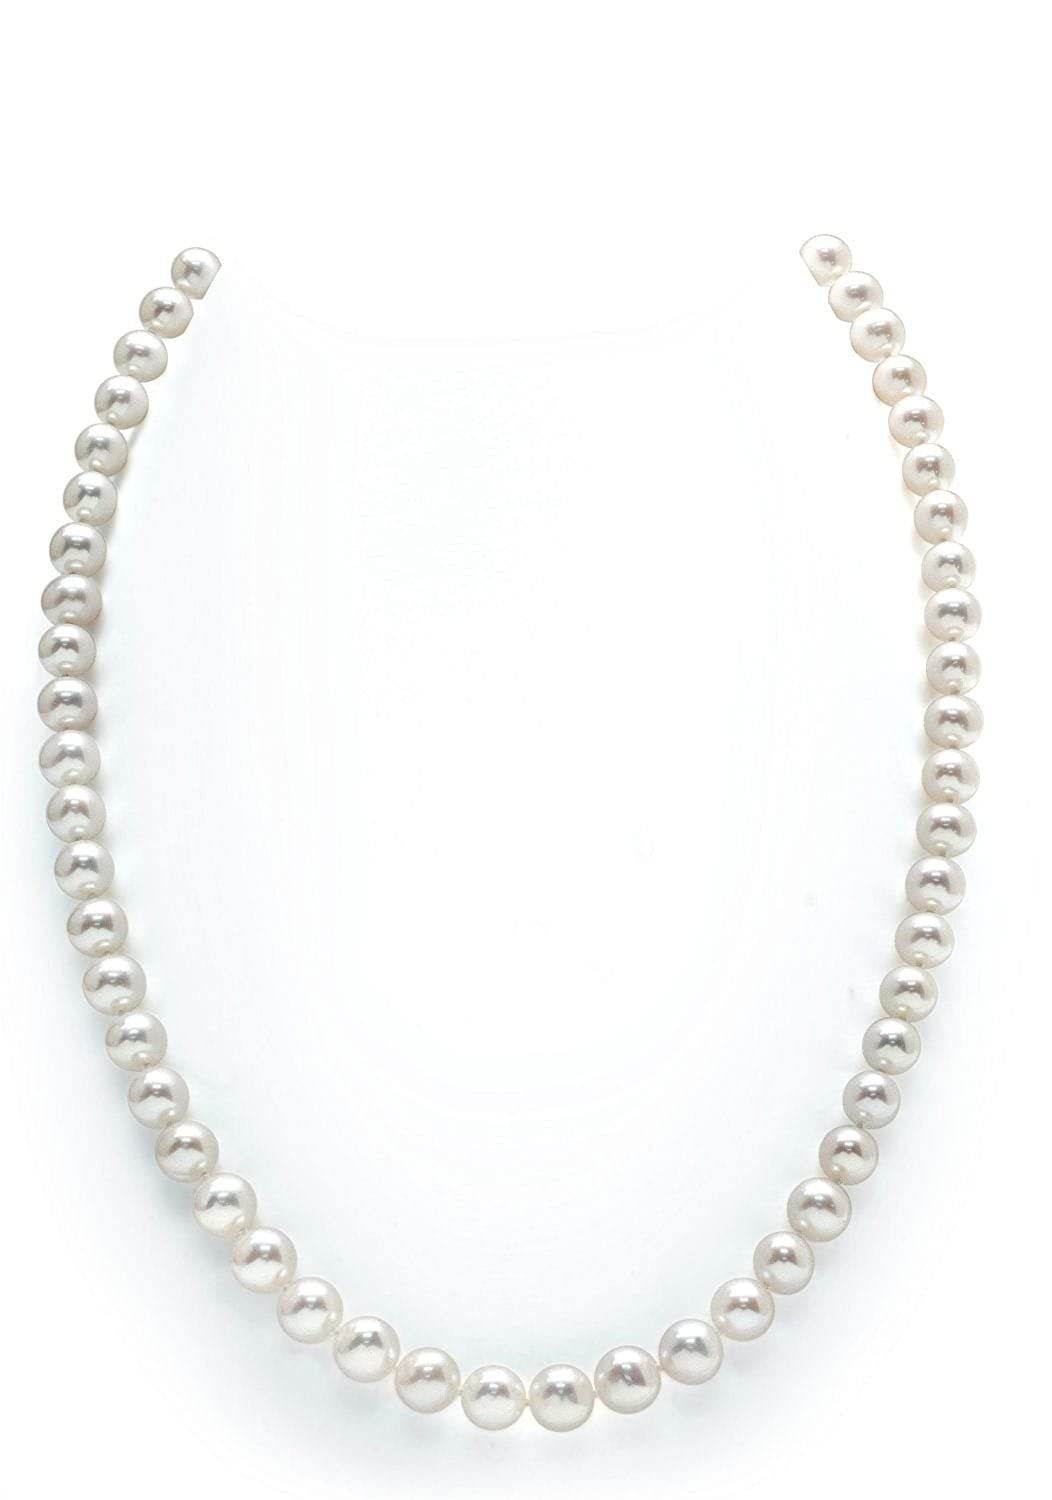 """14K Gold 5.0-5.5mm White Freshwater Cultured Pearl Necklace – AAAA Quality, 17"""" Princess Length"""